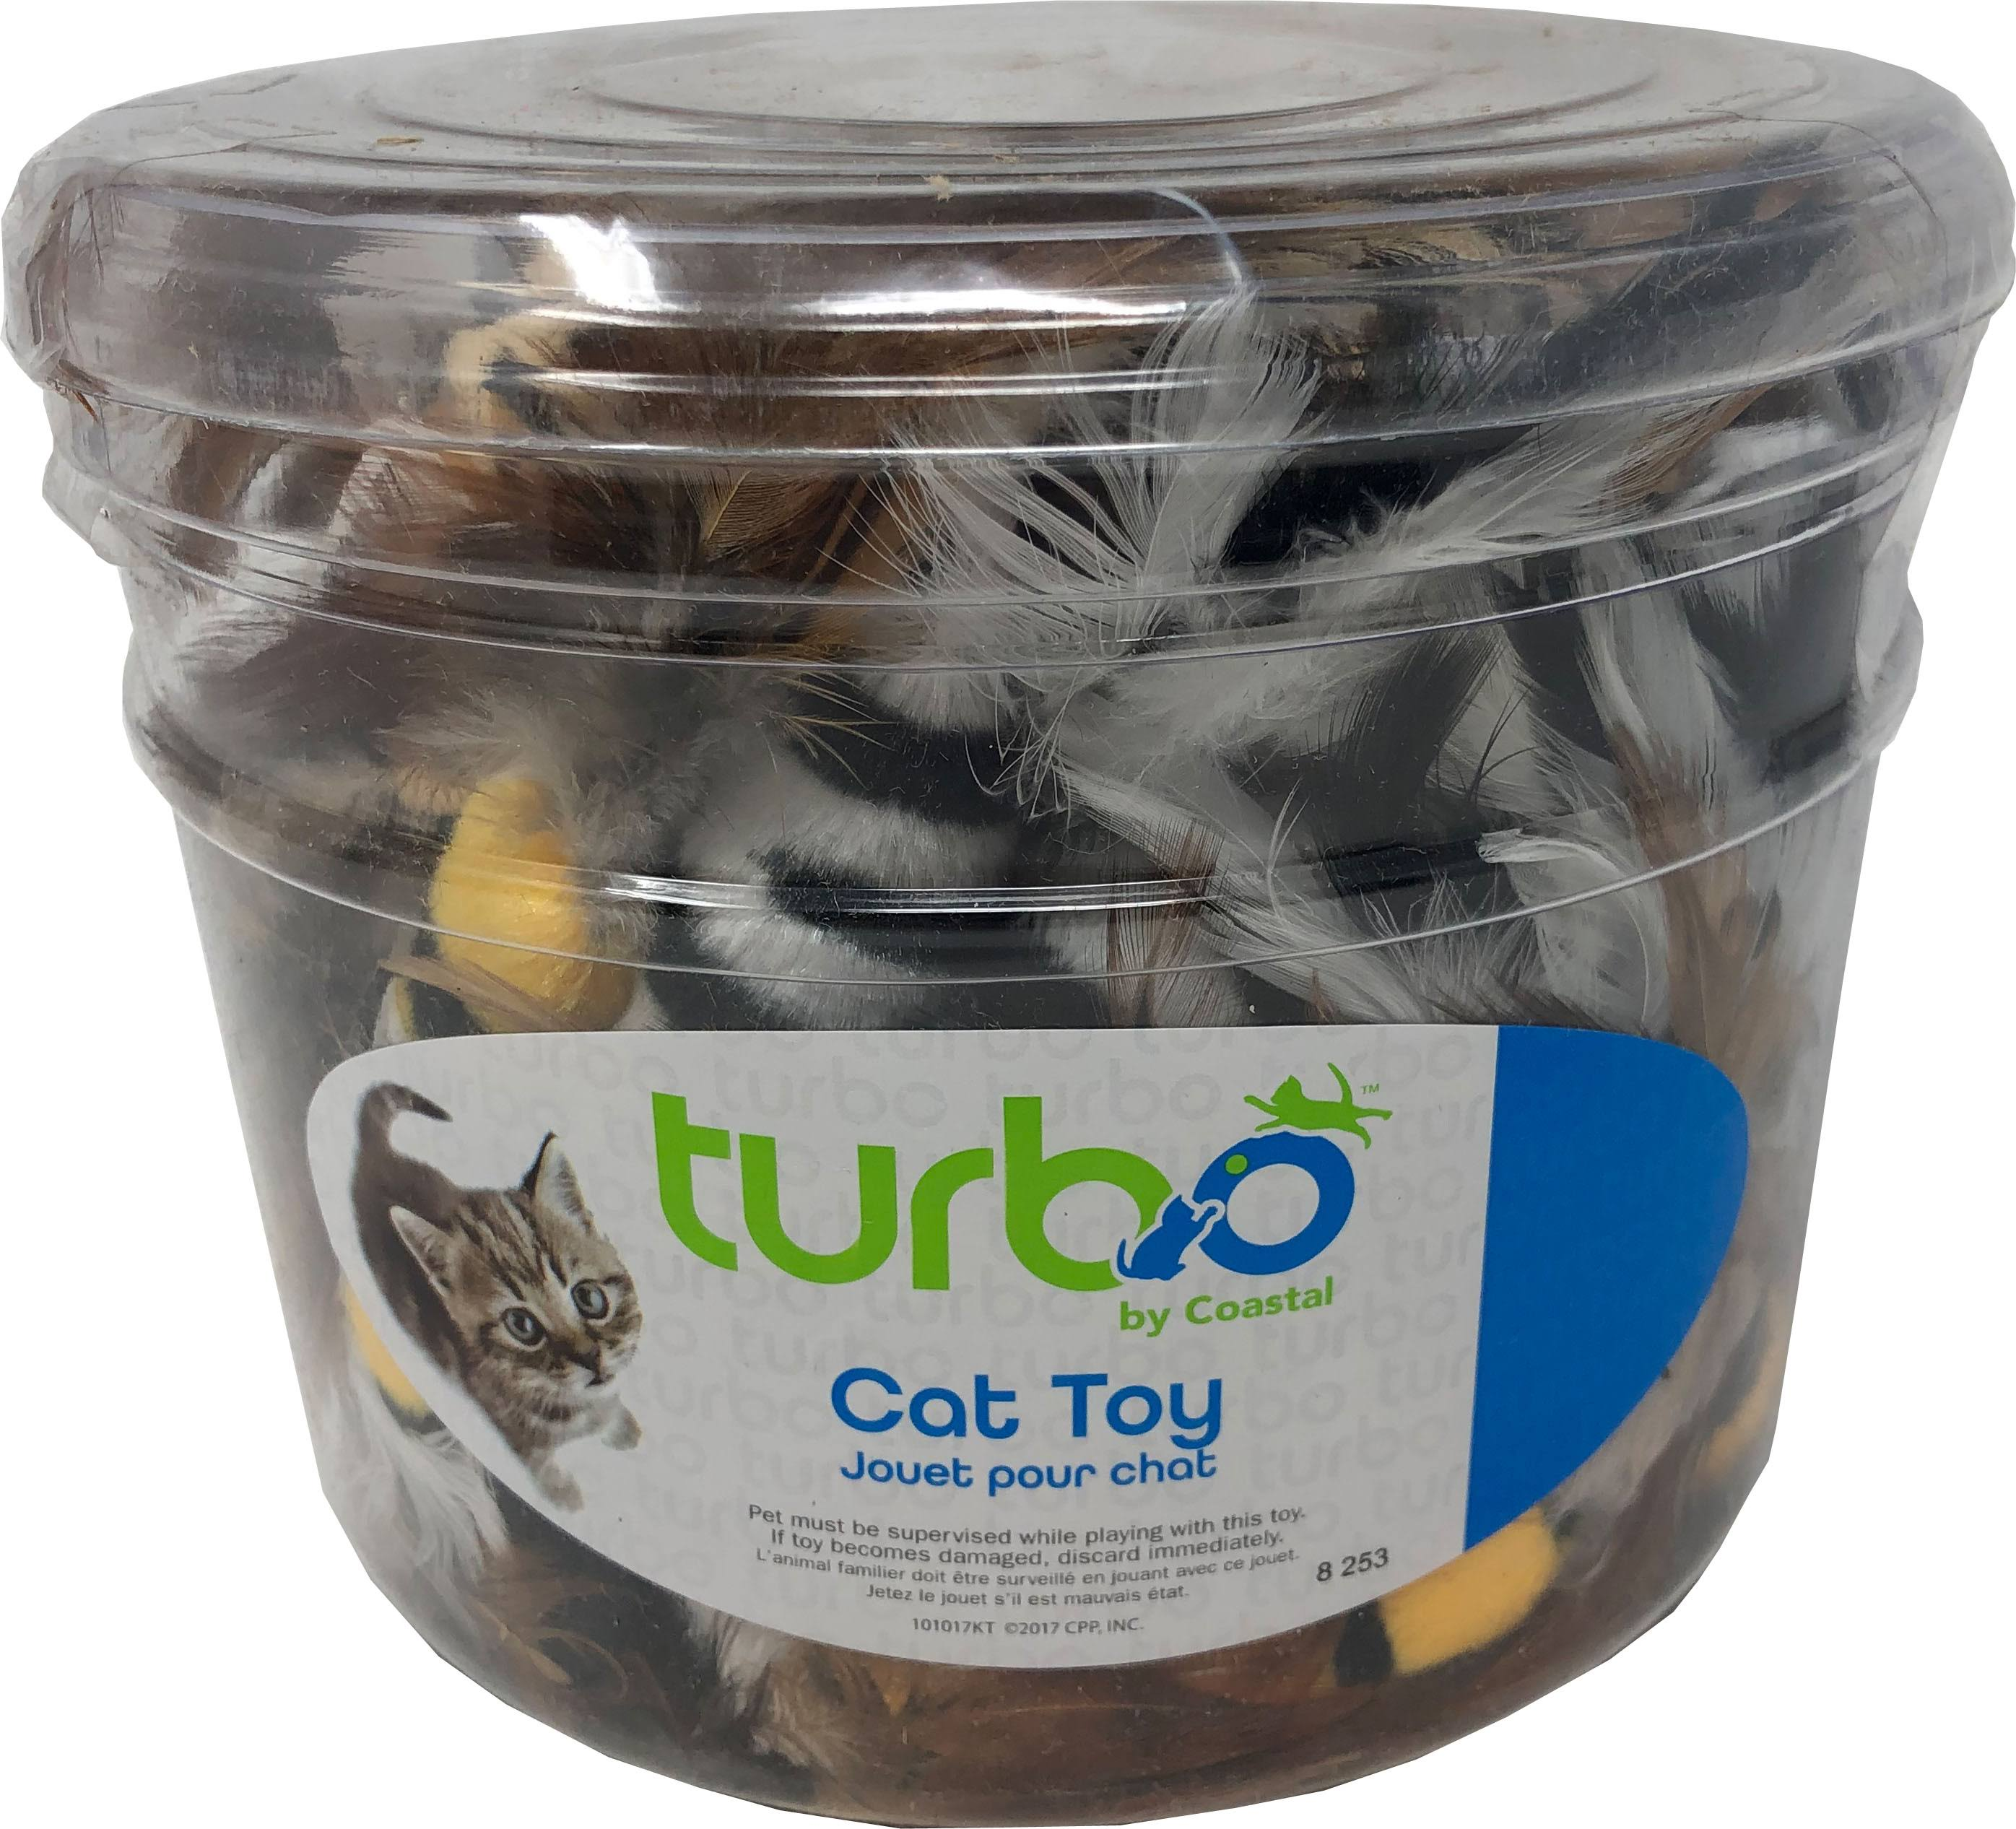 Coastal Pet Products 80524 NCLCAT Turbo Feather Toys Canister - Multicolor 51 Piece - Pack of 8